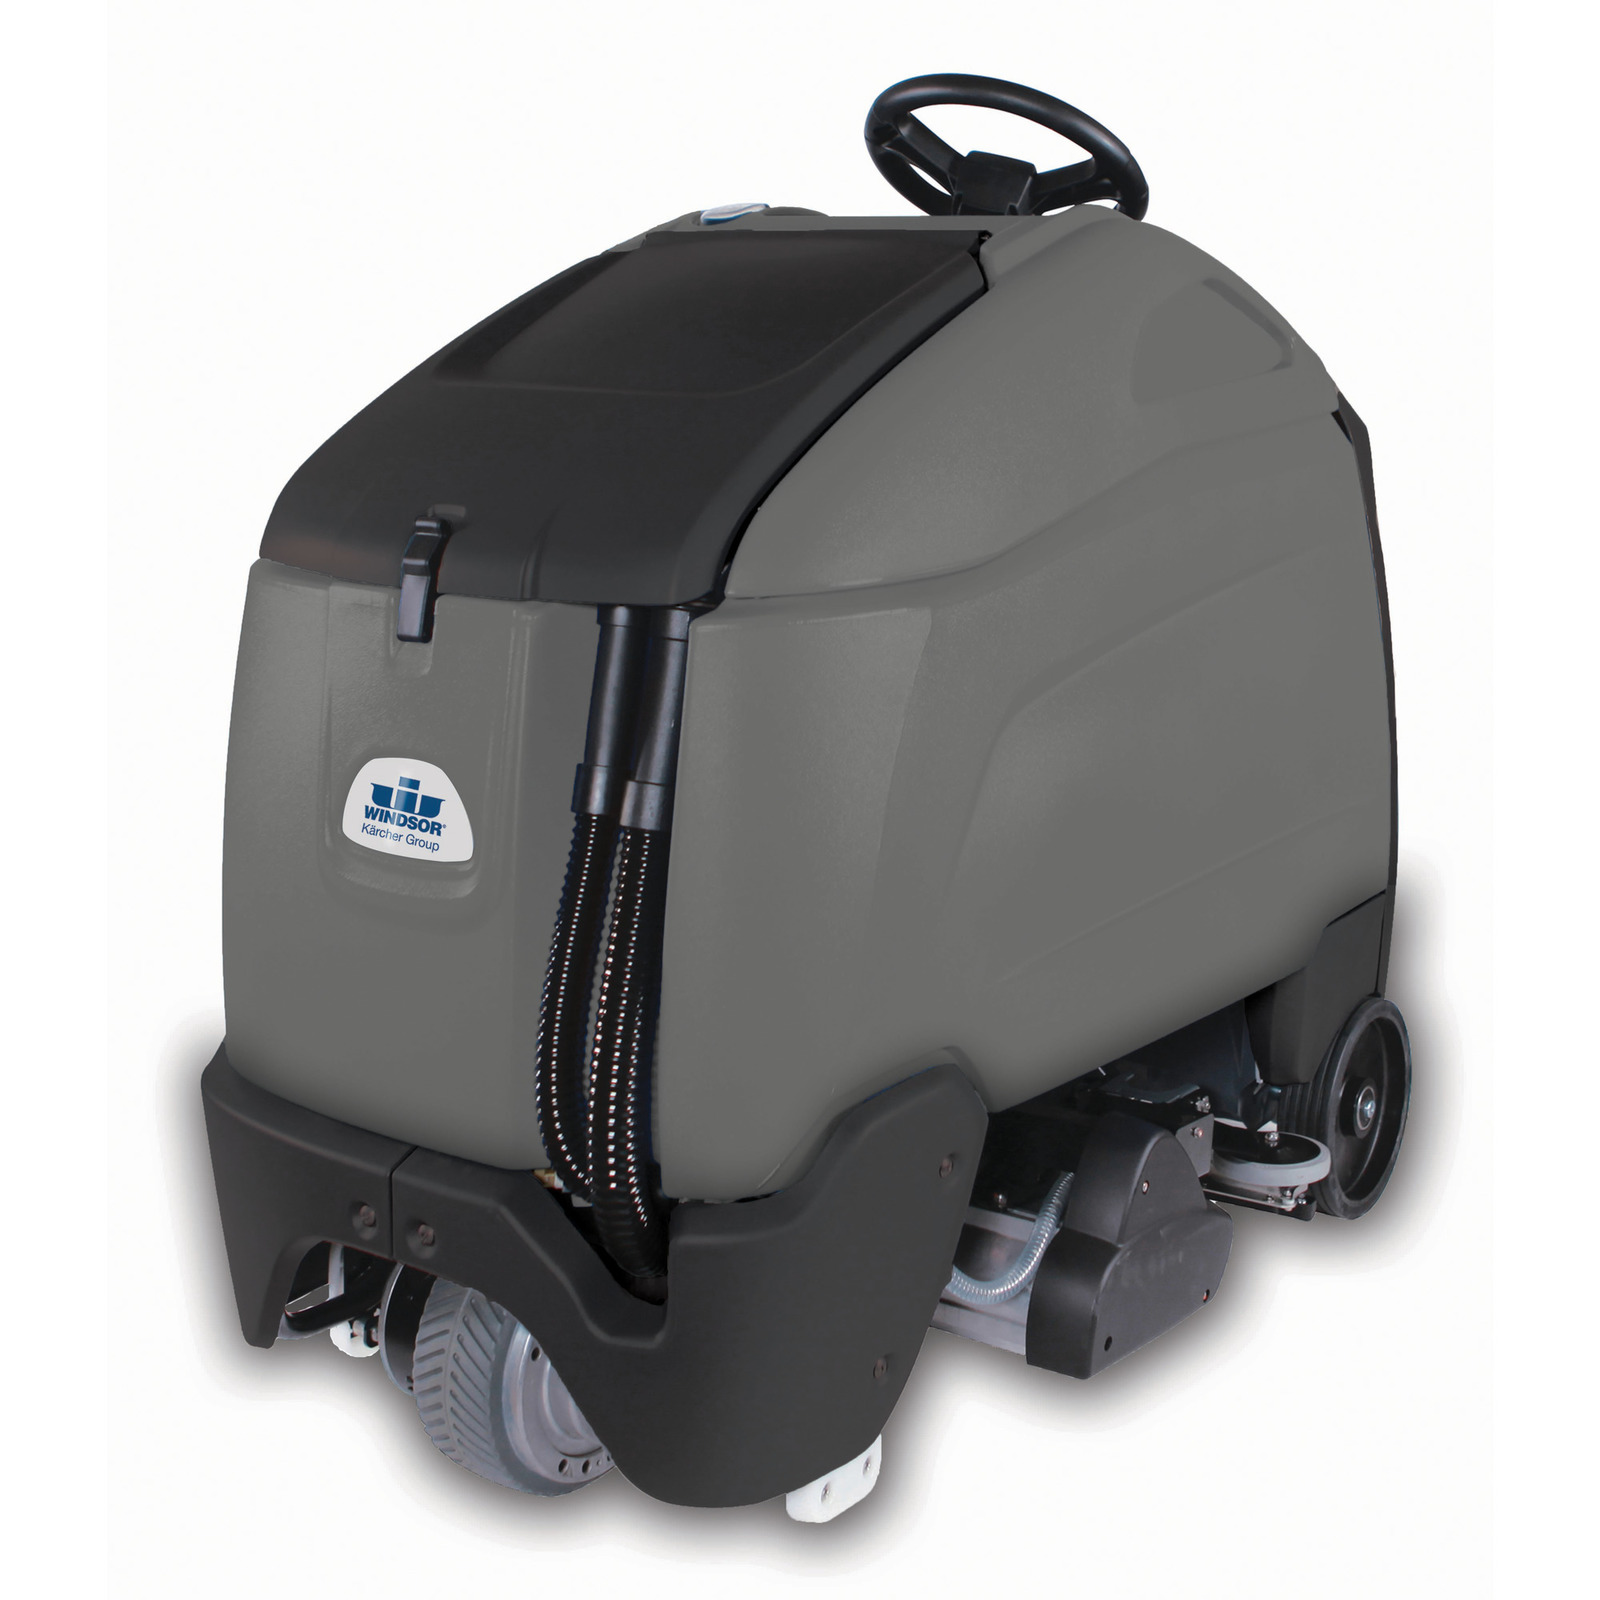 Windsor 1.006-178.0 Chariot 3 iExtract 26 DUO 205 Ah Battery Ride On Carpet Cleaning Machine FREIGHT INCLUDED 9.841-217.0 On-board Charger